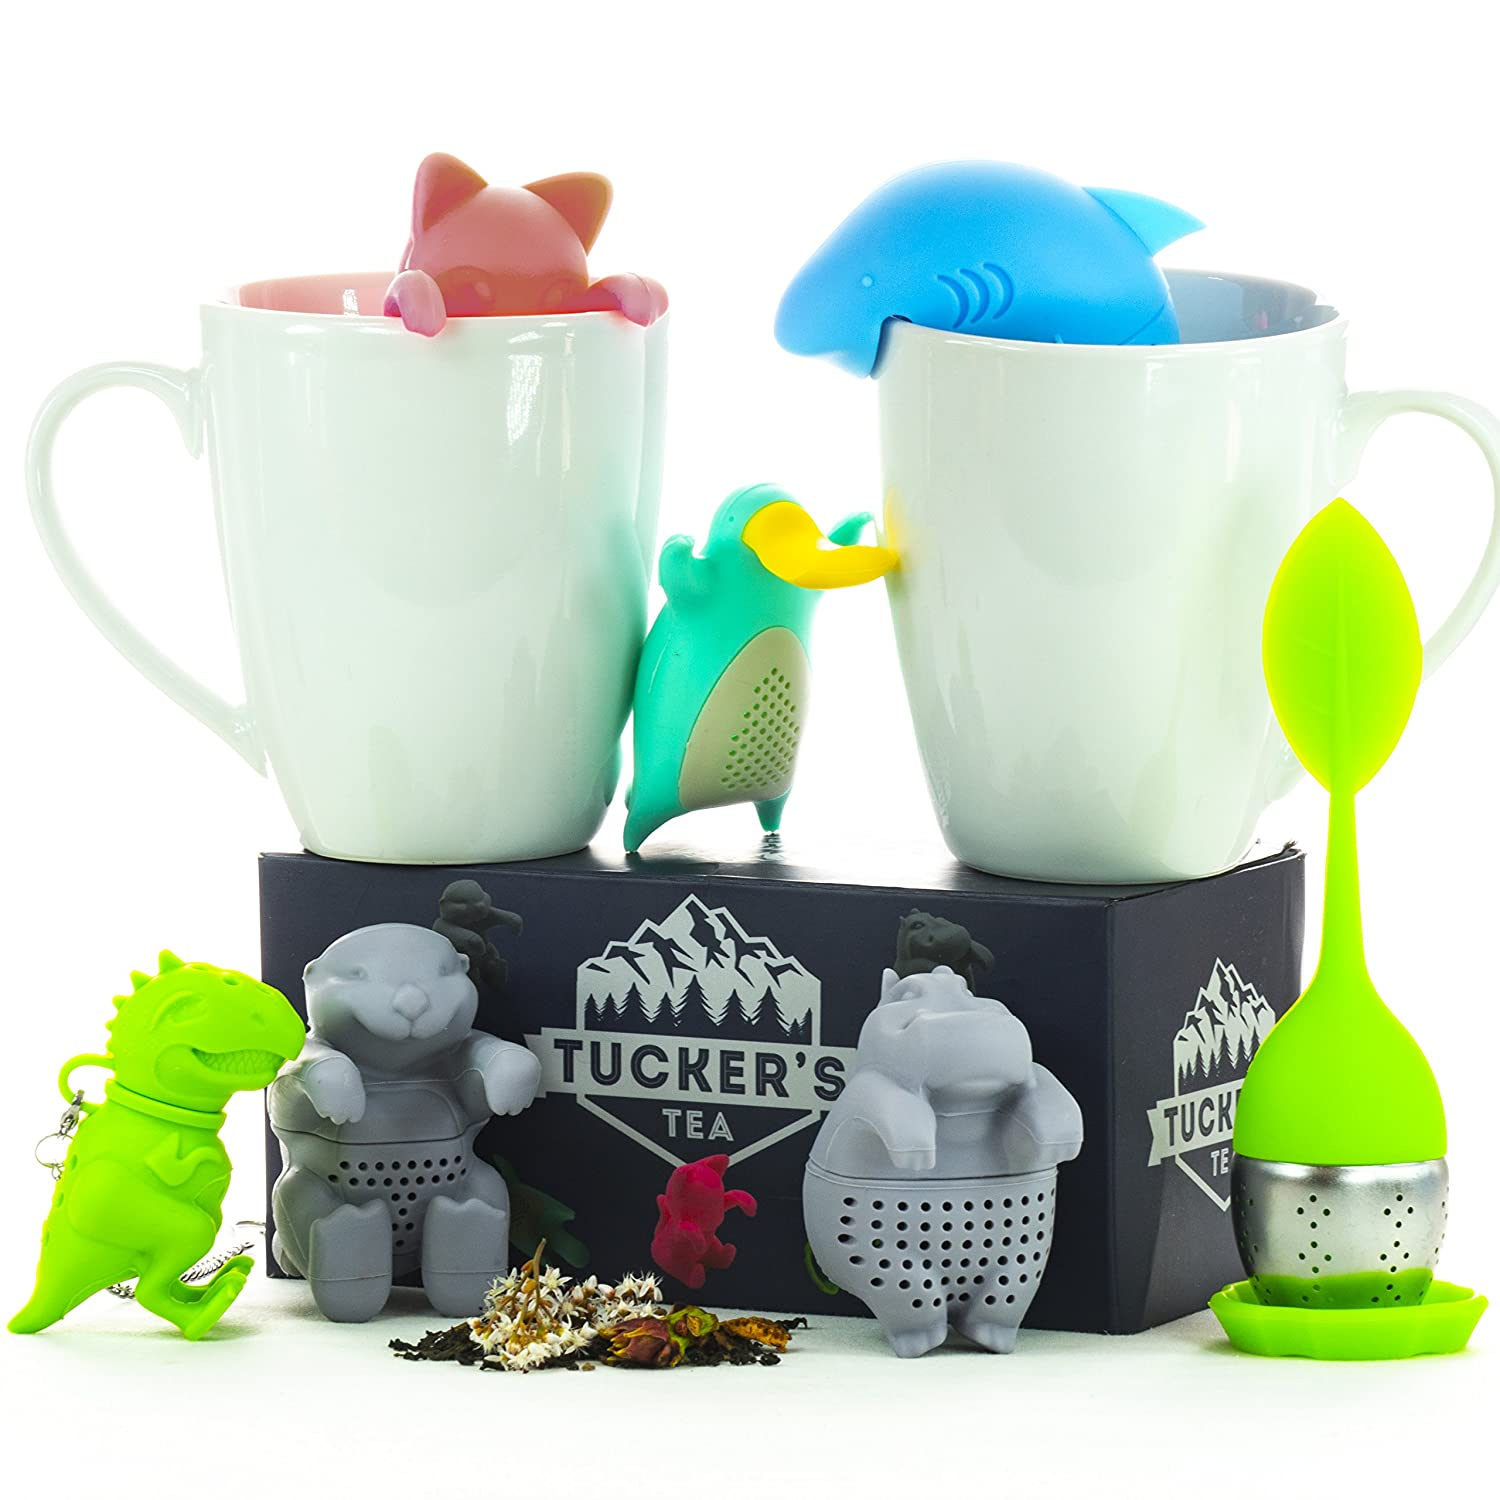 Tuckers Tea infuser set of 7-cute diffuser animals silicone steeper strainer with gift box Tuckers Brand